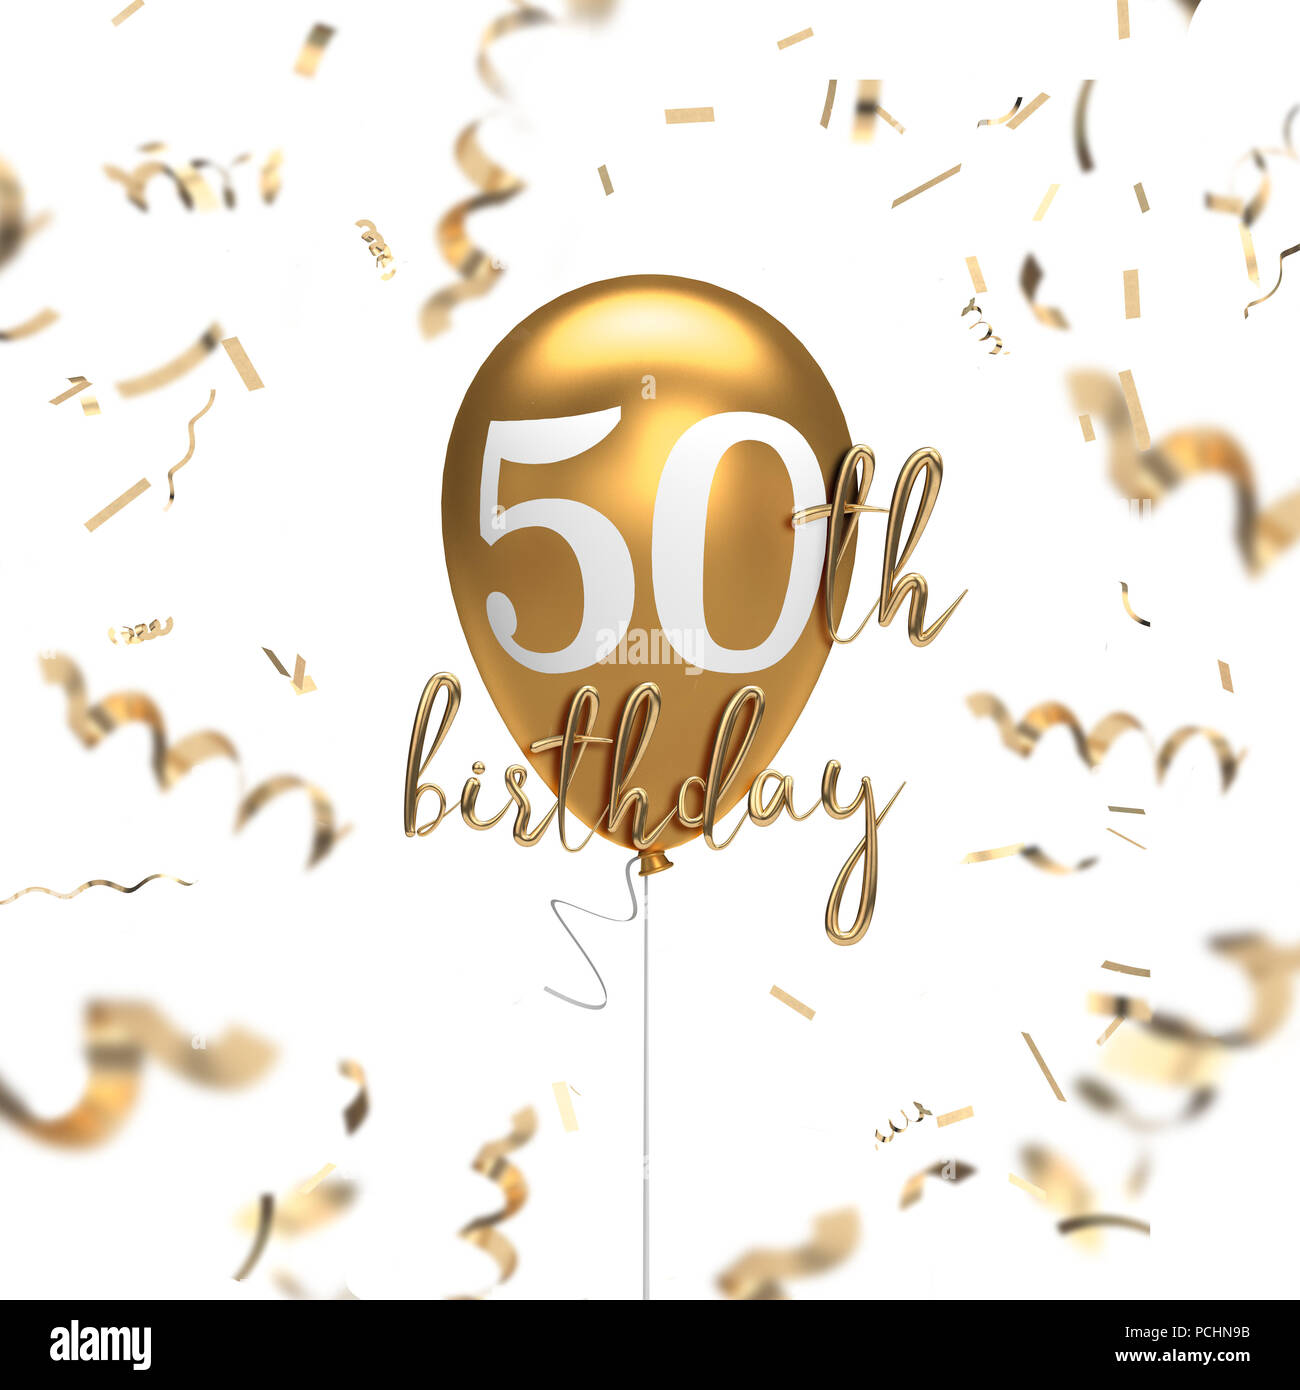 Happy 50th Birthday Gold Balloon Greeting Background 3d Rendering